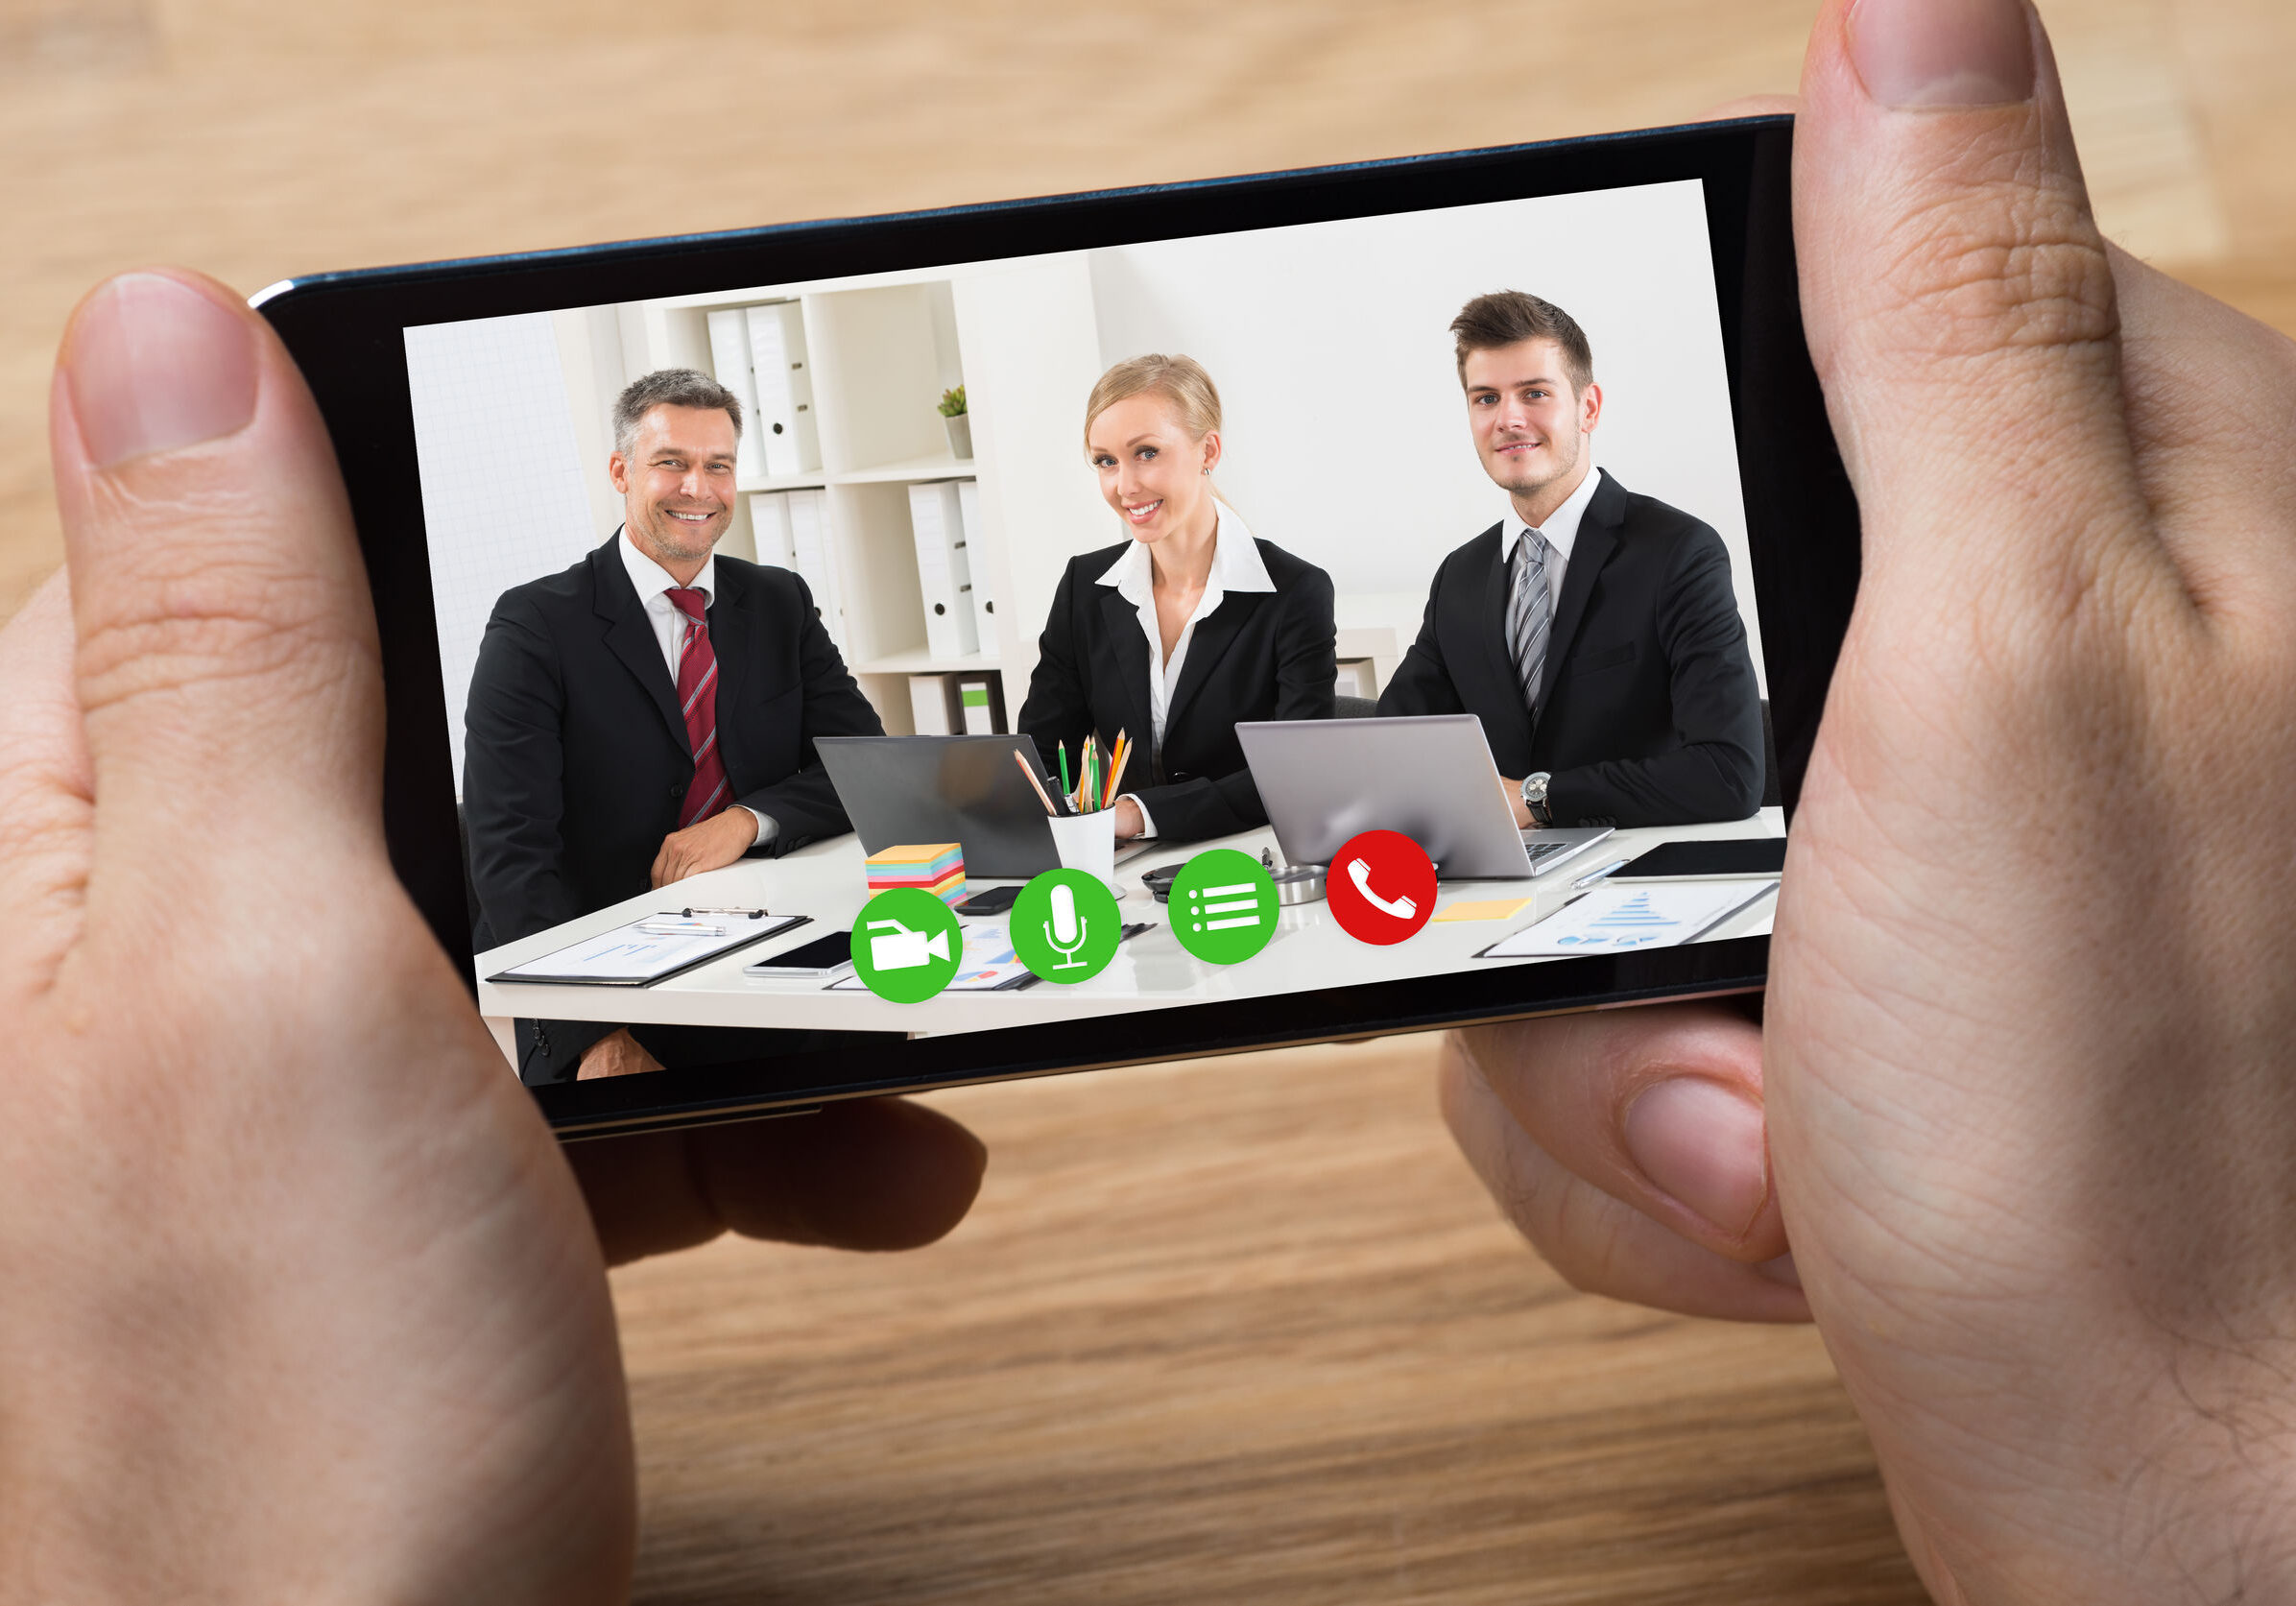 Cropped hands of businessman video conferencing with colleagues on smartphone at desk